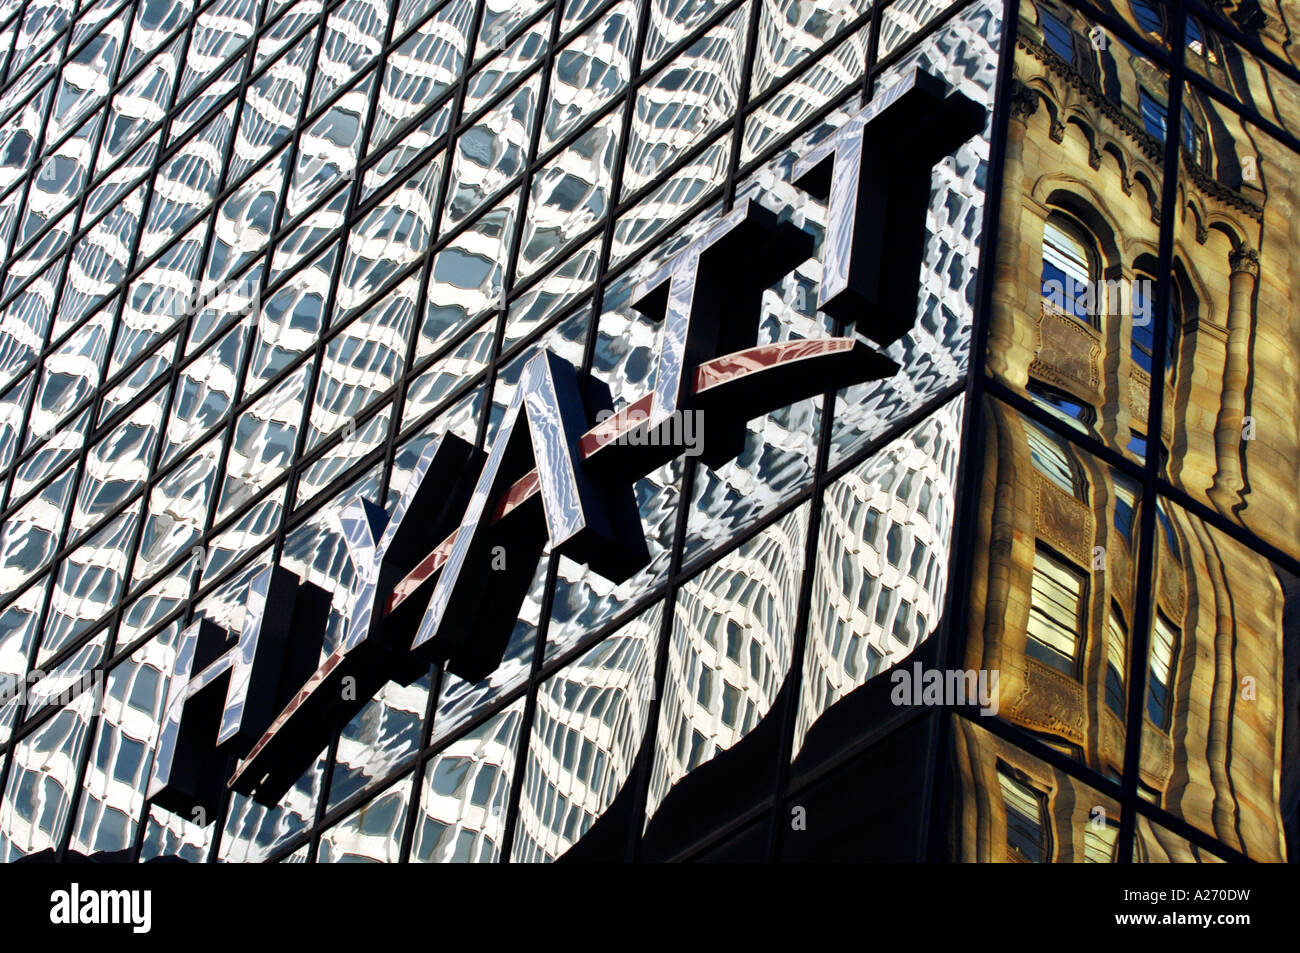 The glass tower of the flagship Hyatt Hotel by Grand Central Station on 42nd Street Manhattan - Stock Image